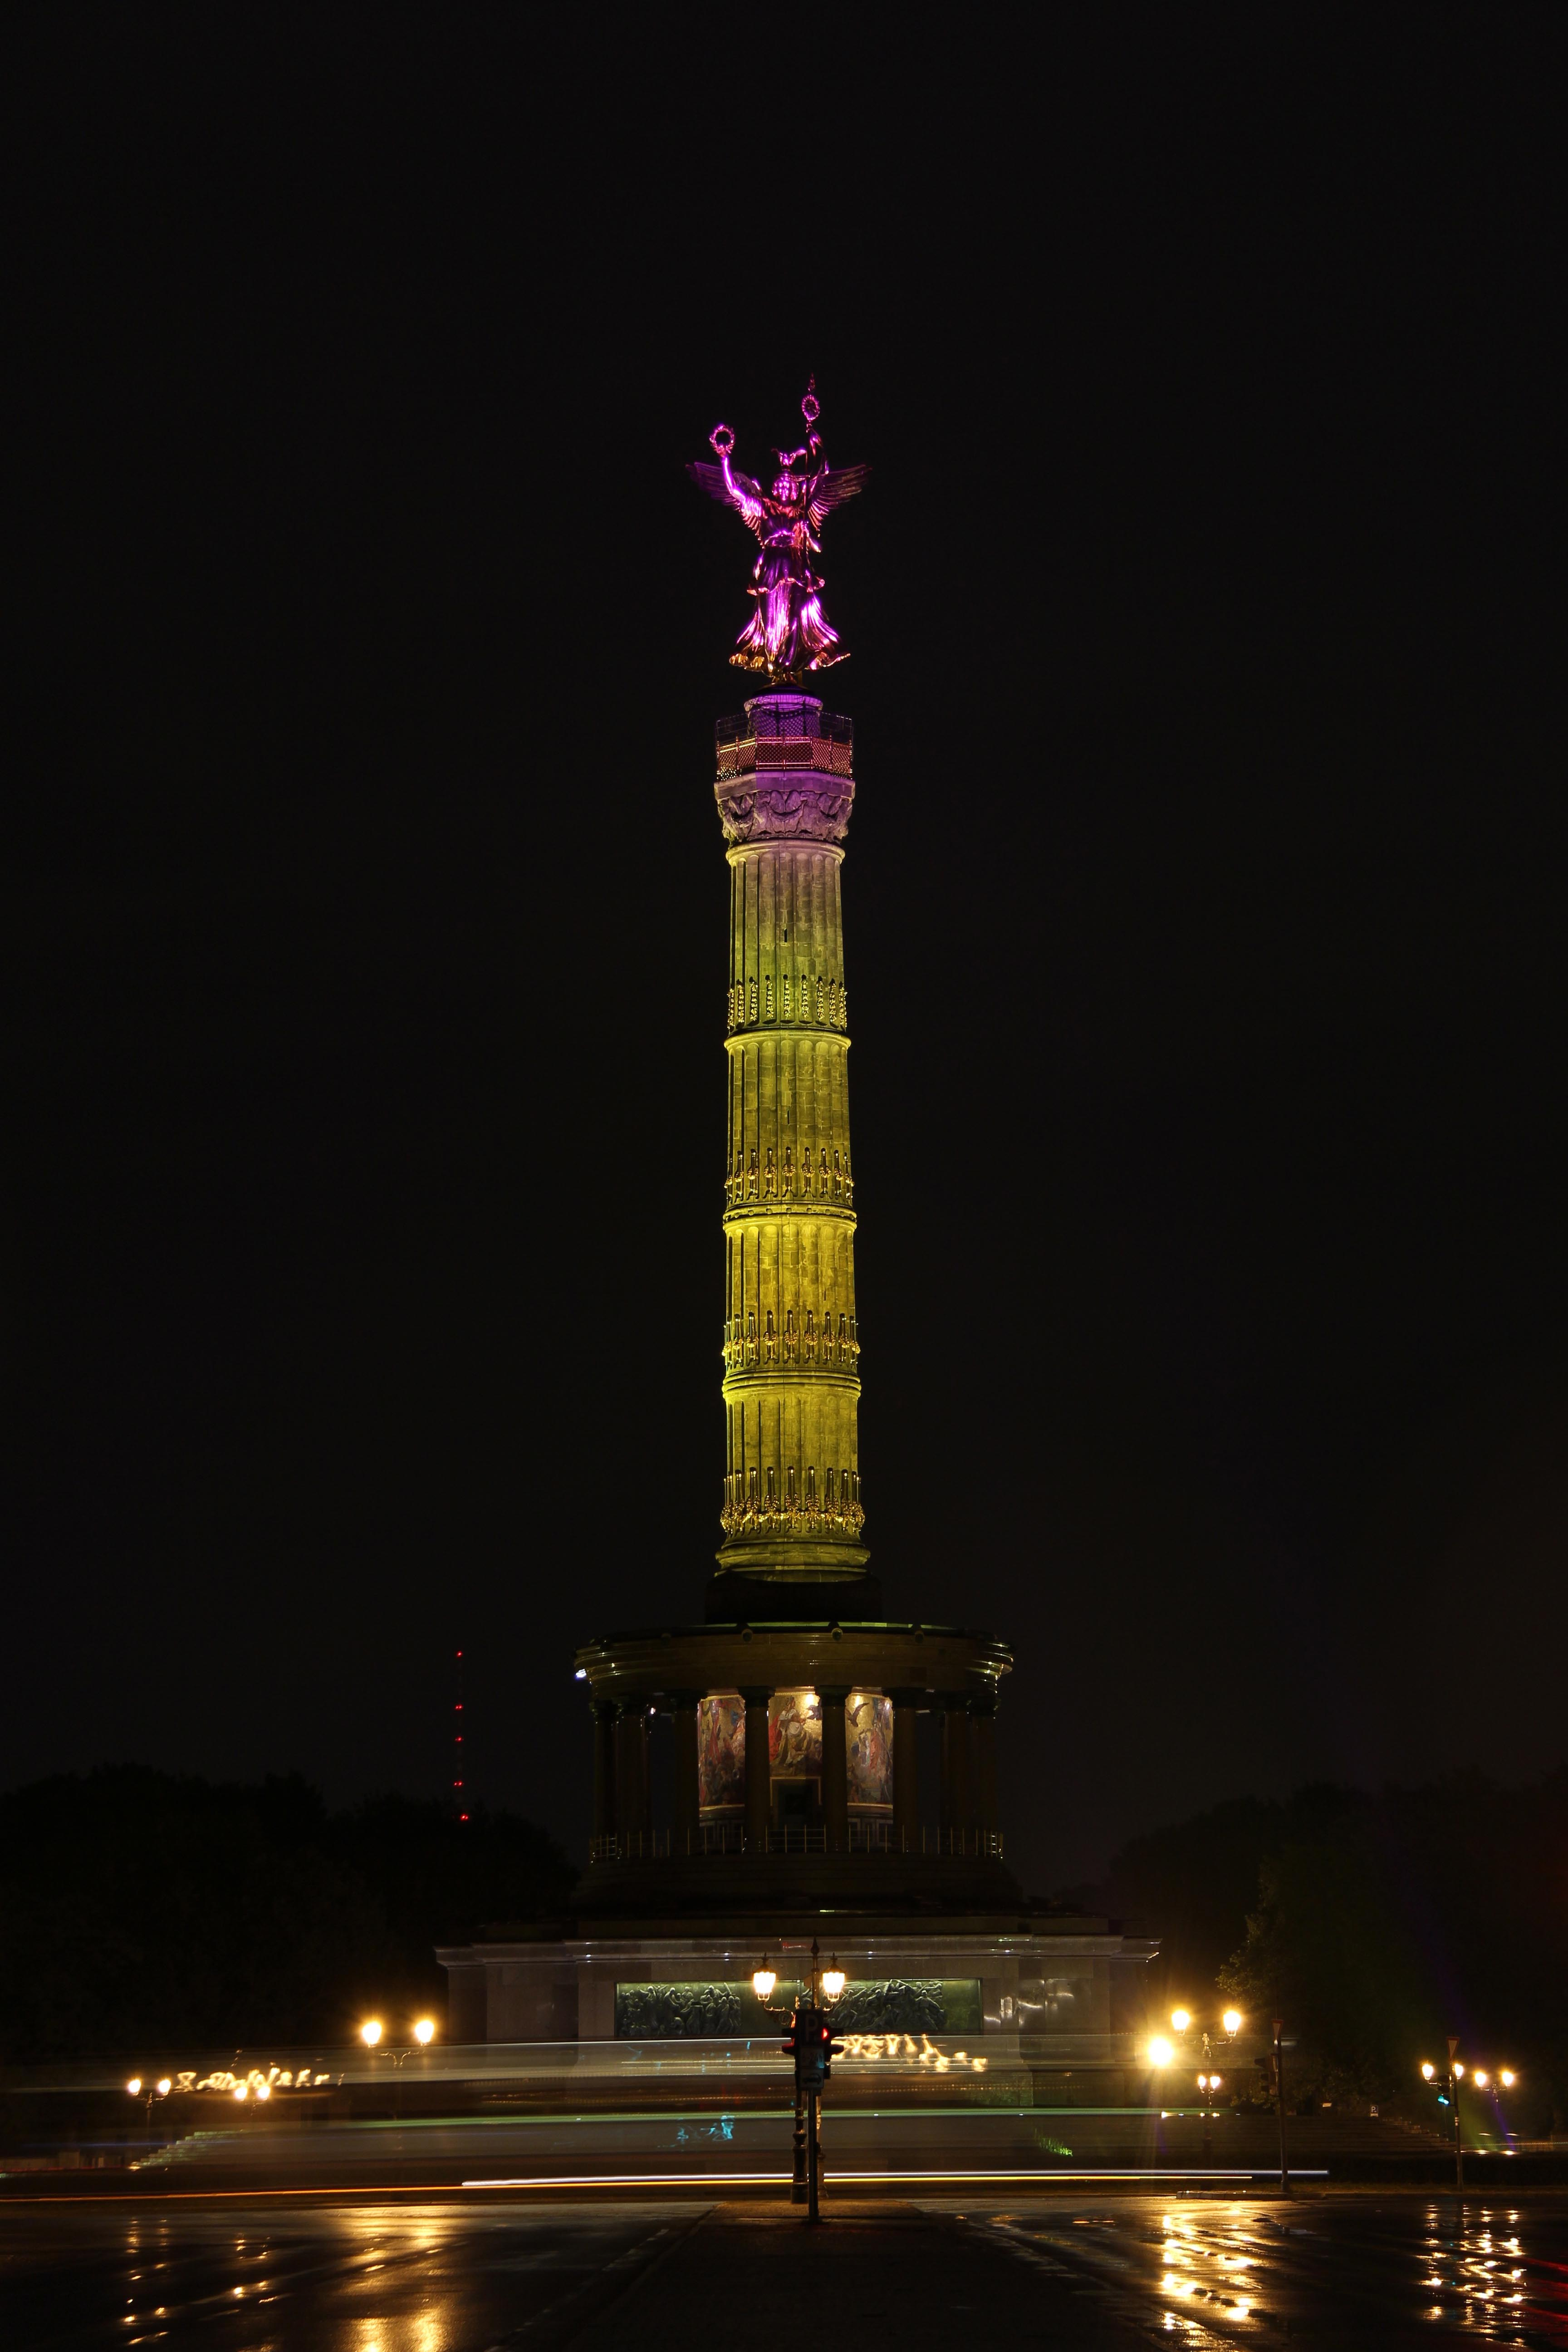 The Sigessäule (Victory Column) lit up during the Festival of Lights in Berlin